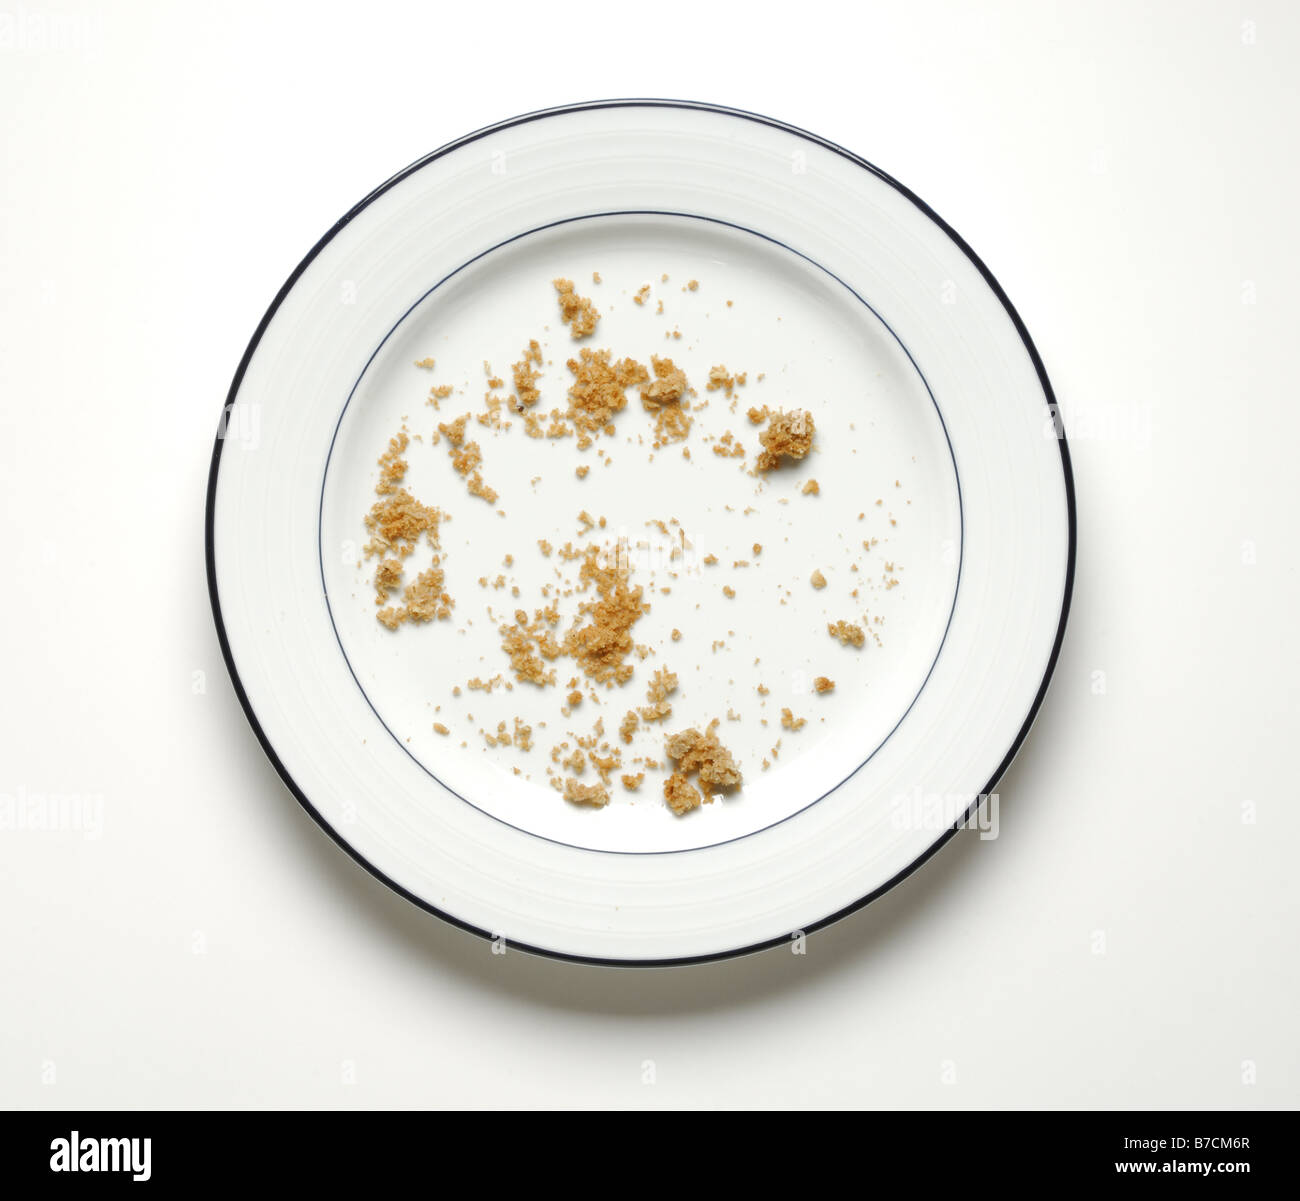 Crumbs Of Food On A Round Dinner Plate Stock Photo